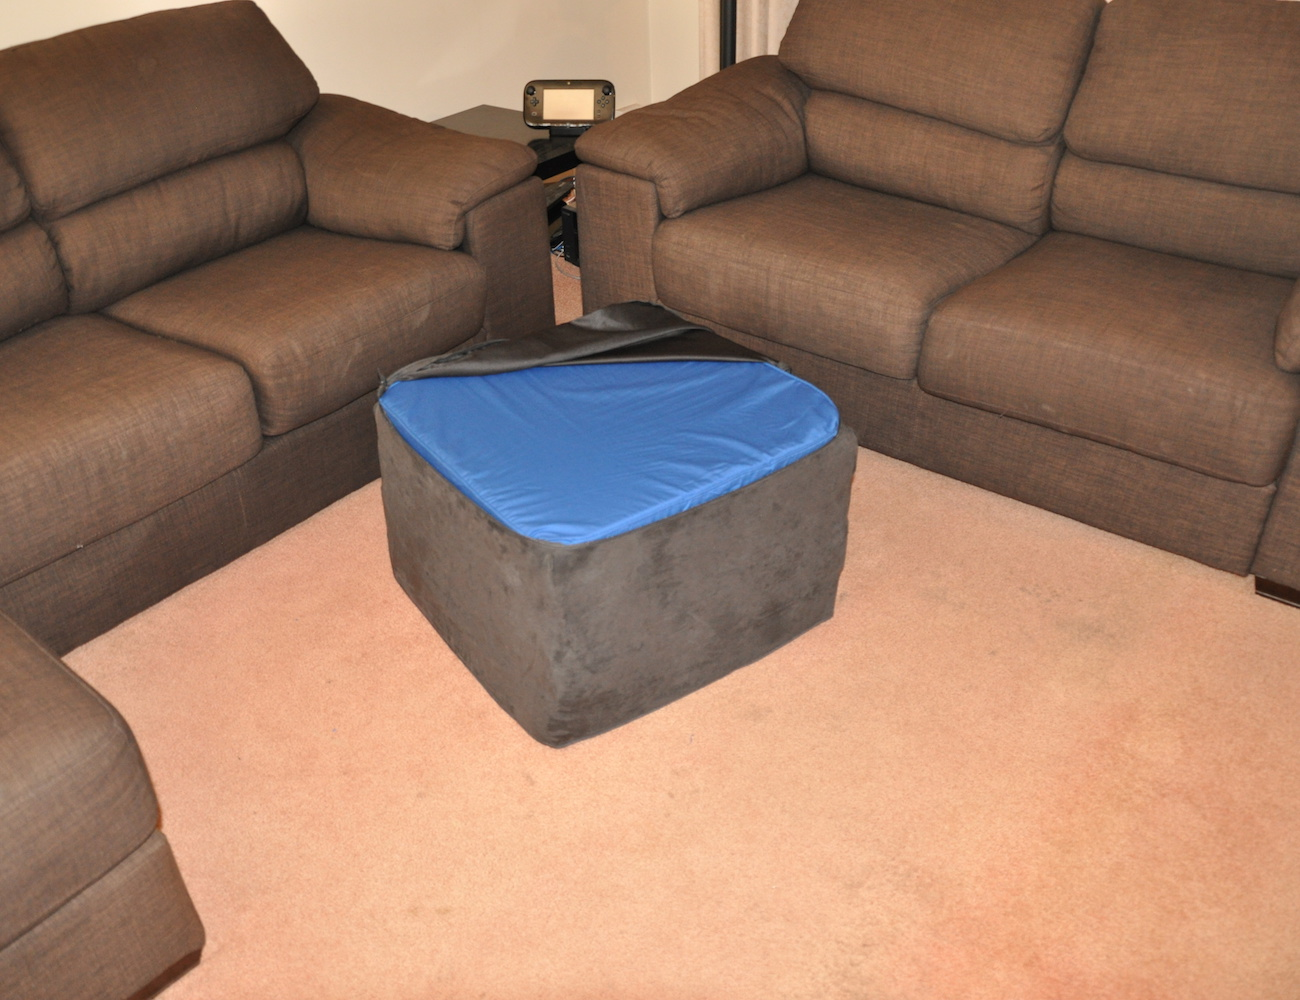 squishy-forts-pillow-fort-ottoman-02